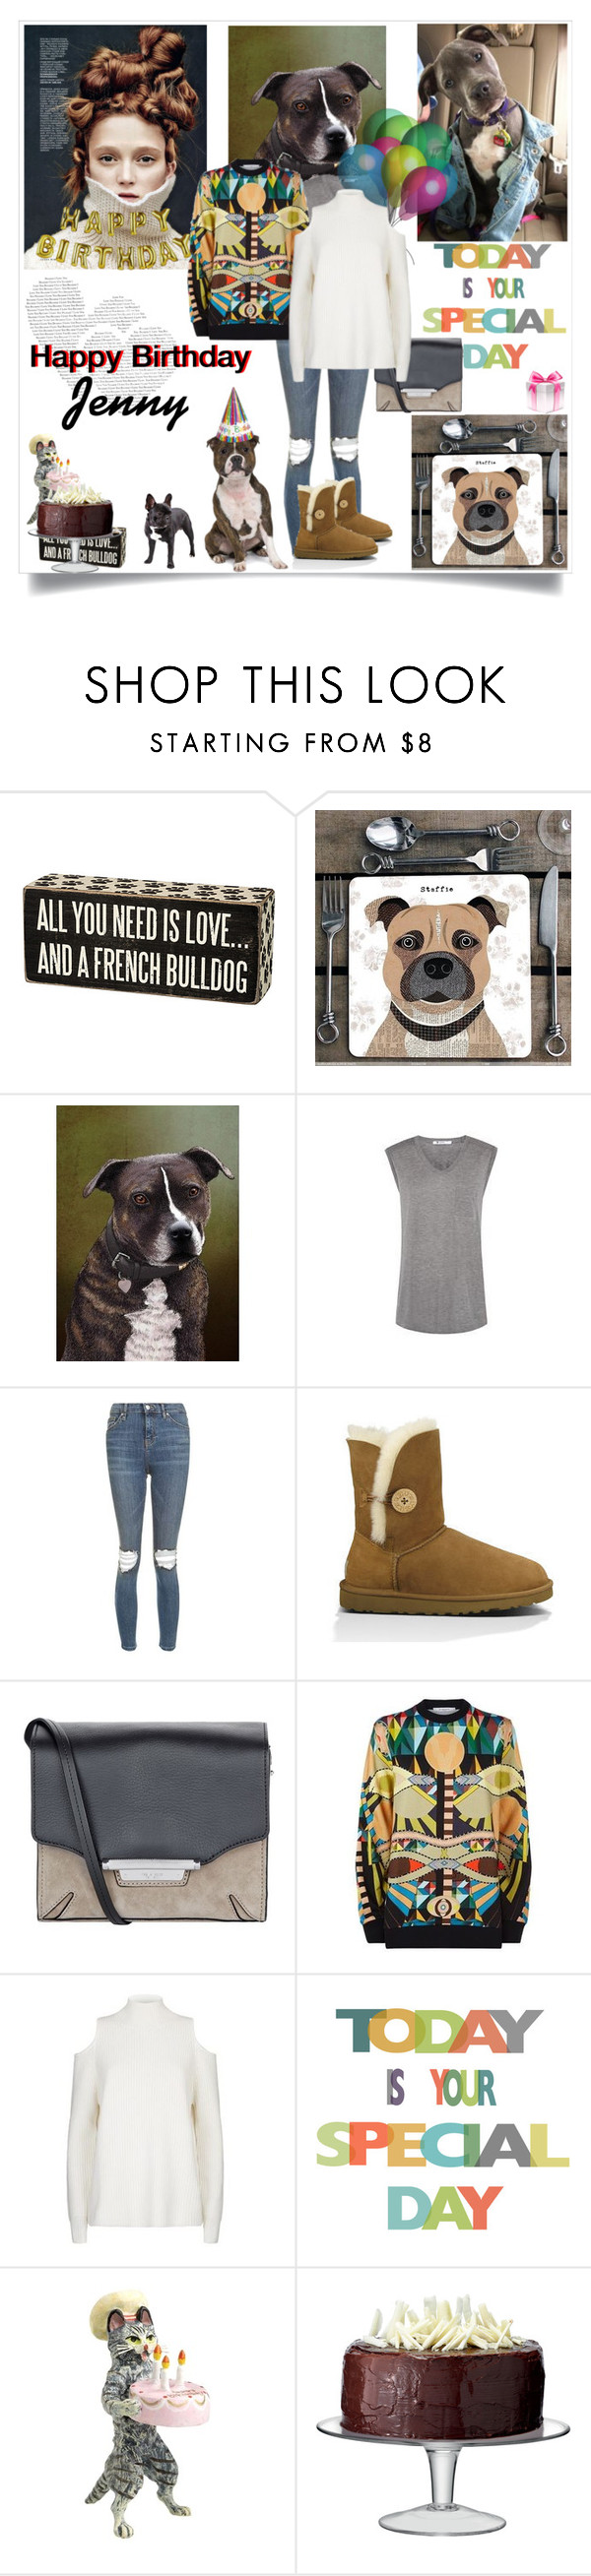 """Happy Birthday Jenny"" by lizart ❤ liked on Polyvore featuring Primitives By Kathy, Topshop, UGG Australia, rag & bone, Givenchy, ZoÃ« Jordan, Talking Tables and LSA International"